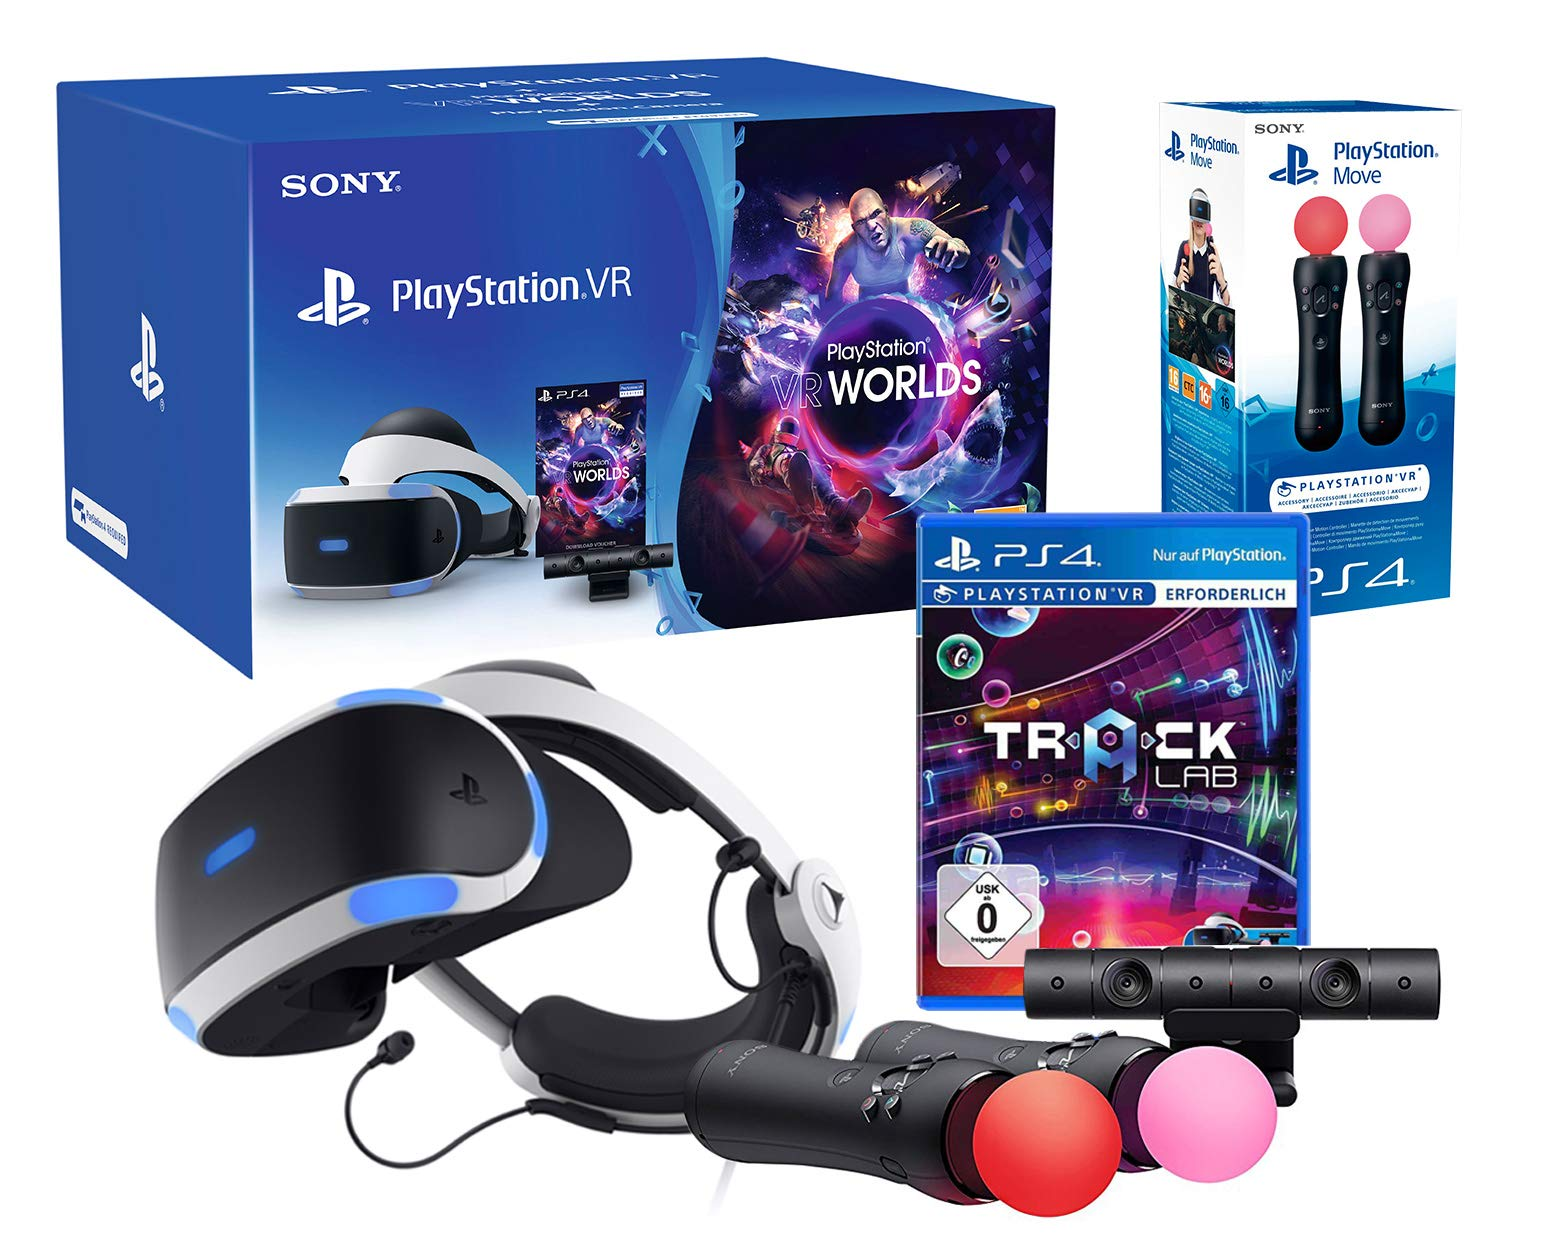 PlayStation VR2 (CUH-ZVR2) «Starter Music Pack» + VR Worlds + Track-Lab + Camera V2 + Paire Twin Move Controllers